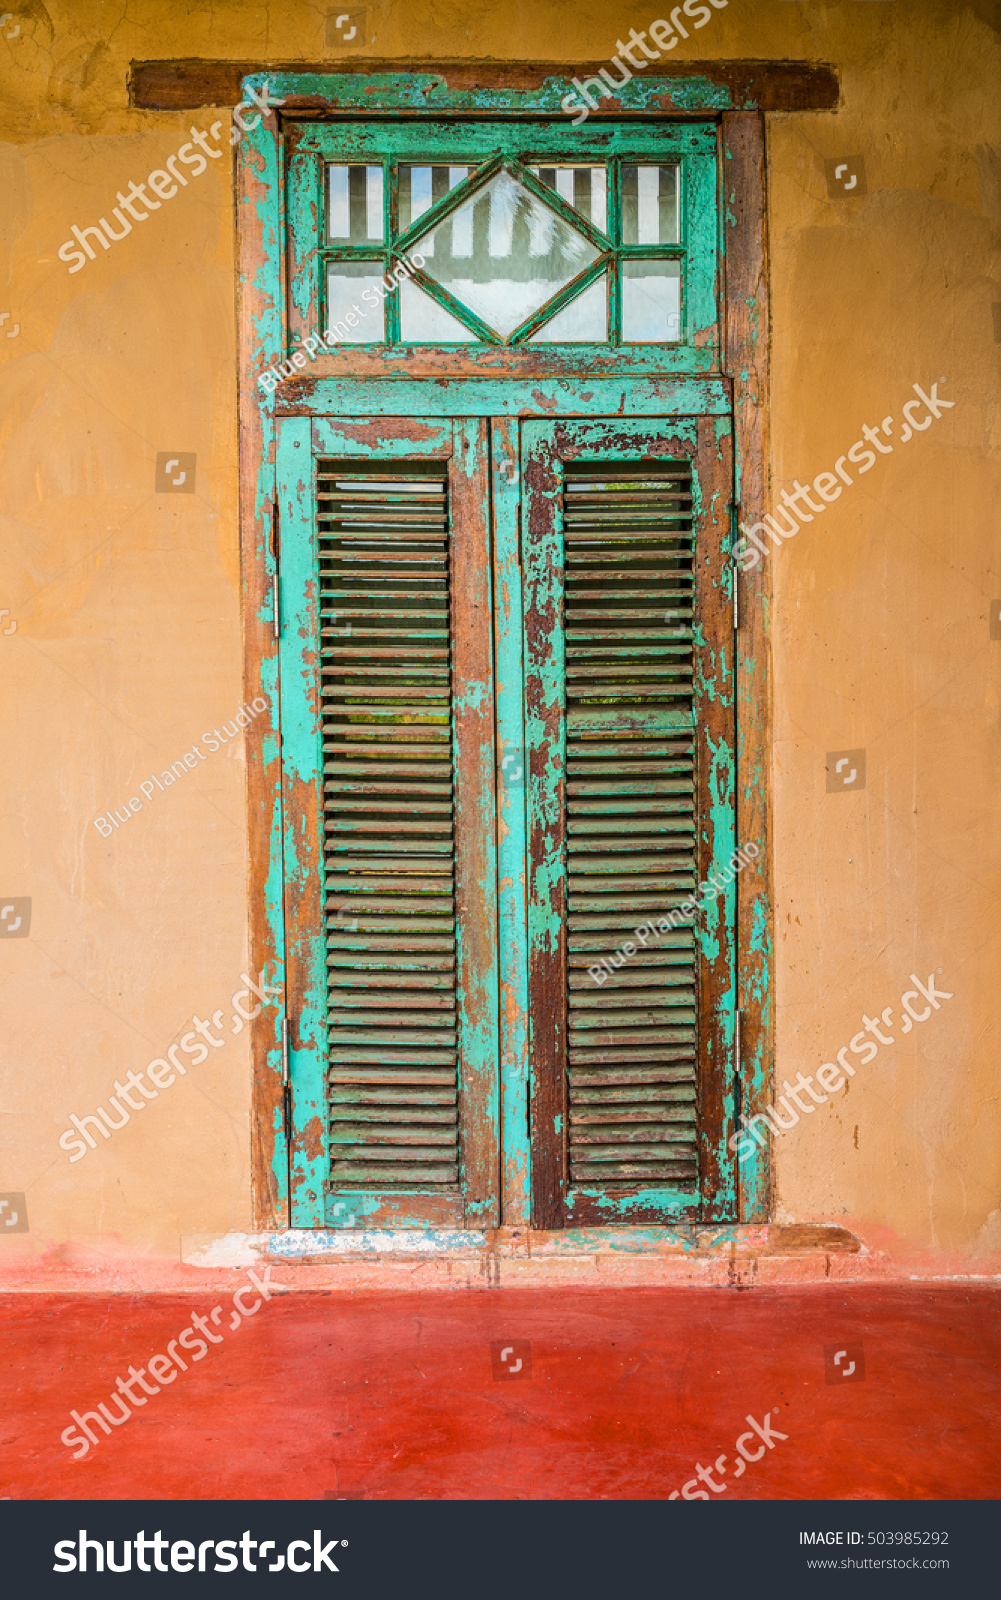 Vintage Style Old House Interior Door And Windows. Indian Building  Exterior. #503985292